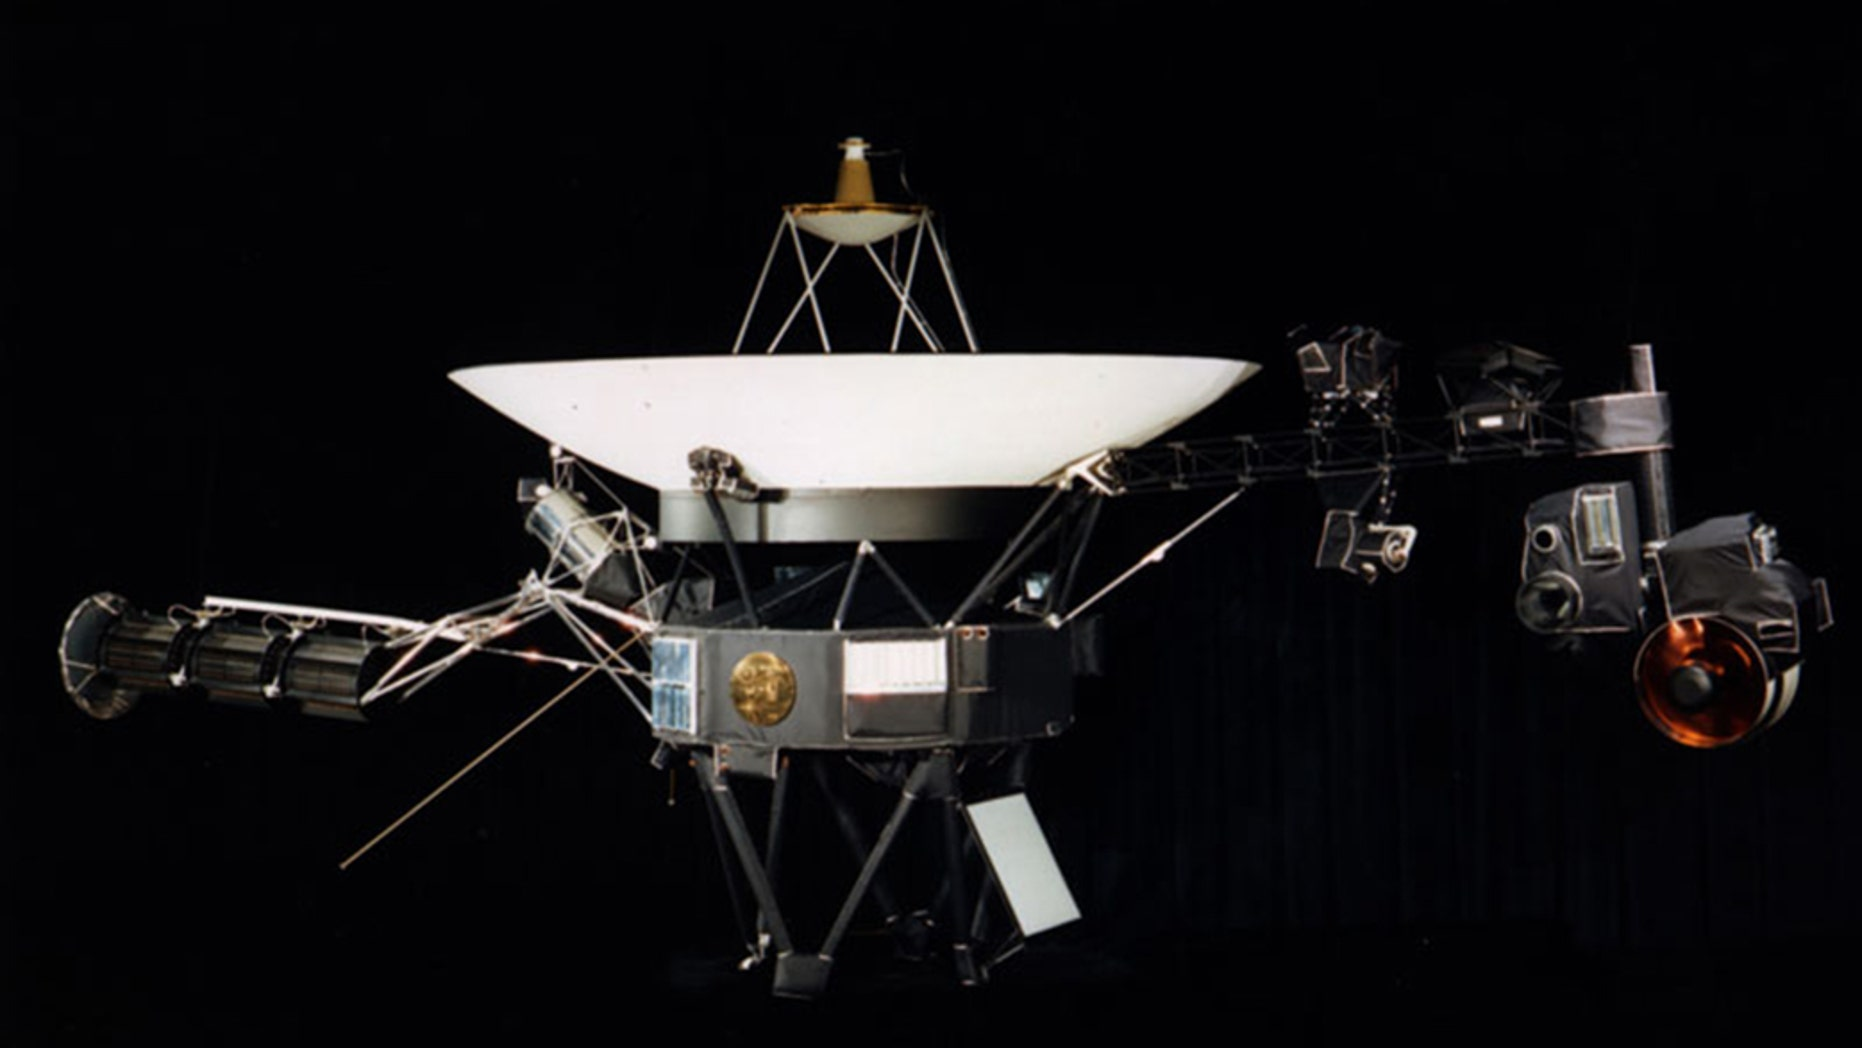 Copies of the Golden Record, sent journeying into deep space on the sides of the Voyager 1 and Voyager 2 probes in 1977, carries the sounds and music of Earth as well as a series of images to help characterize it.